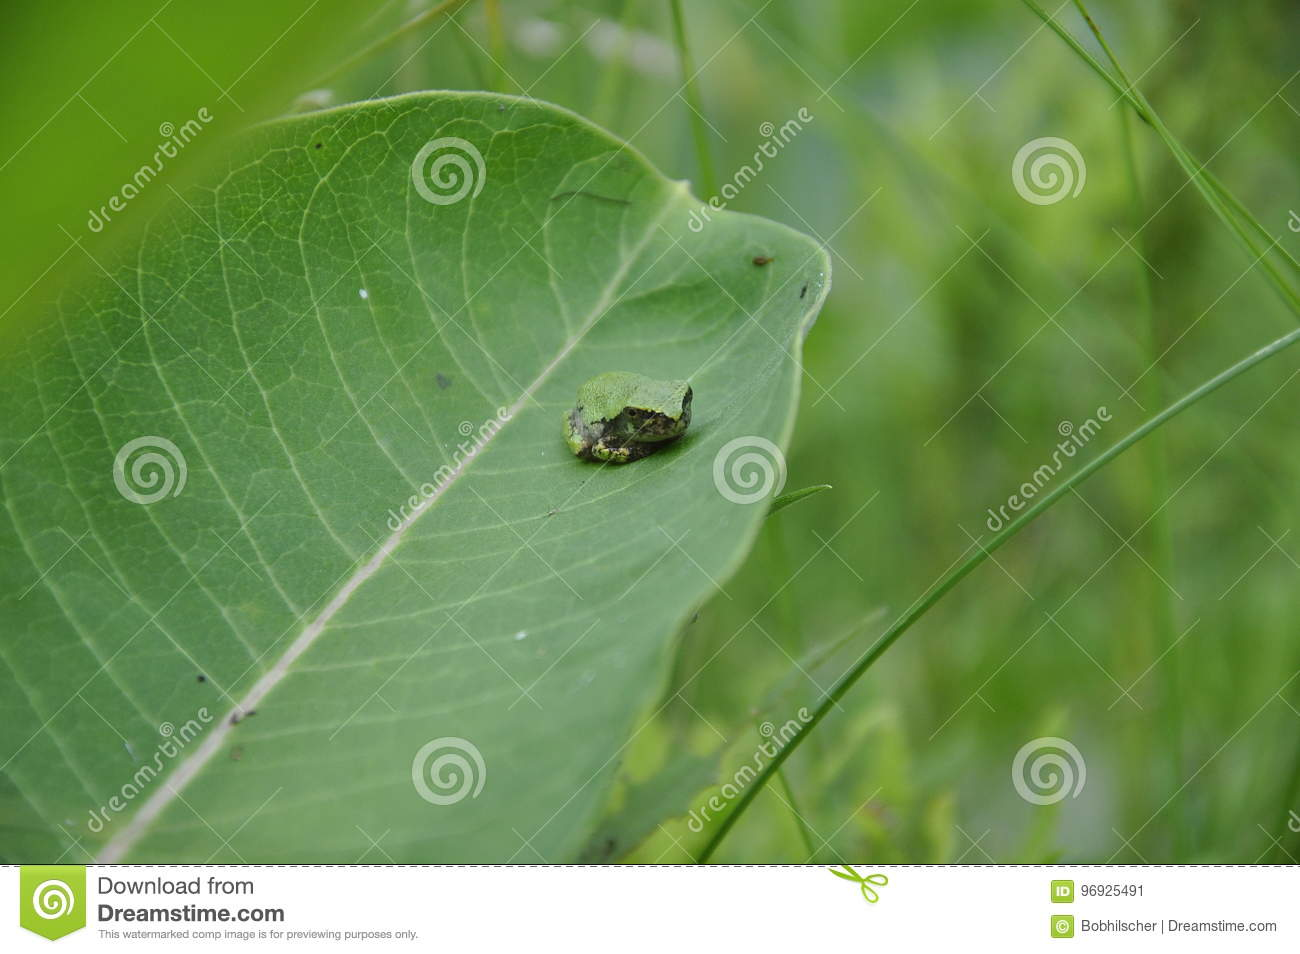 Gray Tree Frog resting on a milkweed plant